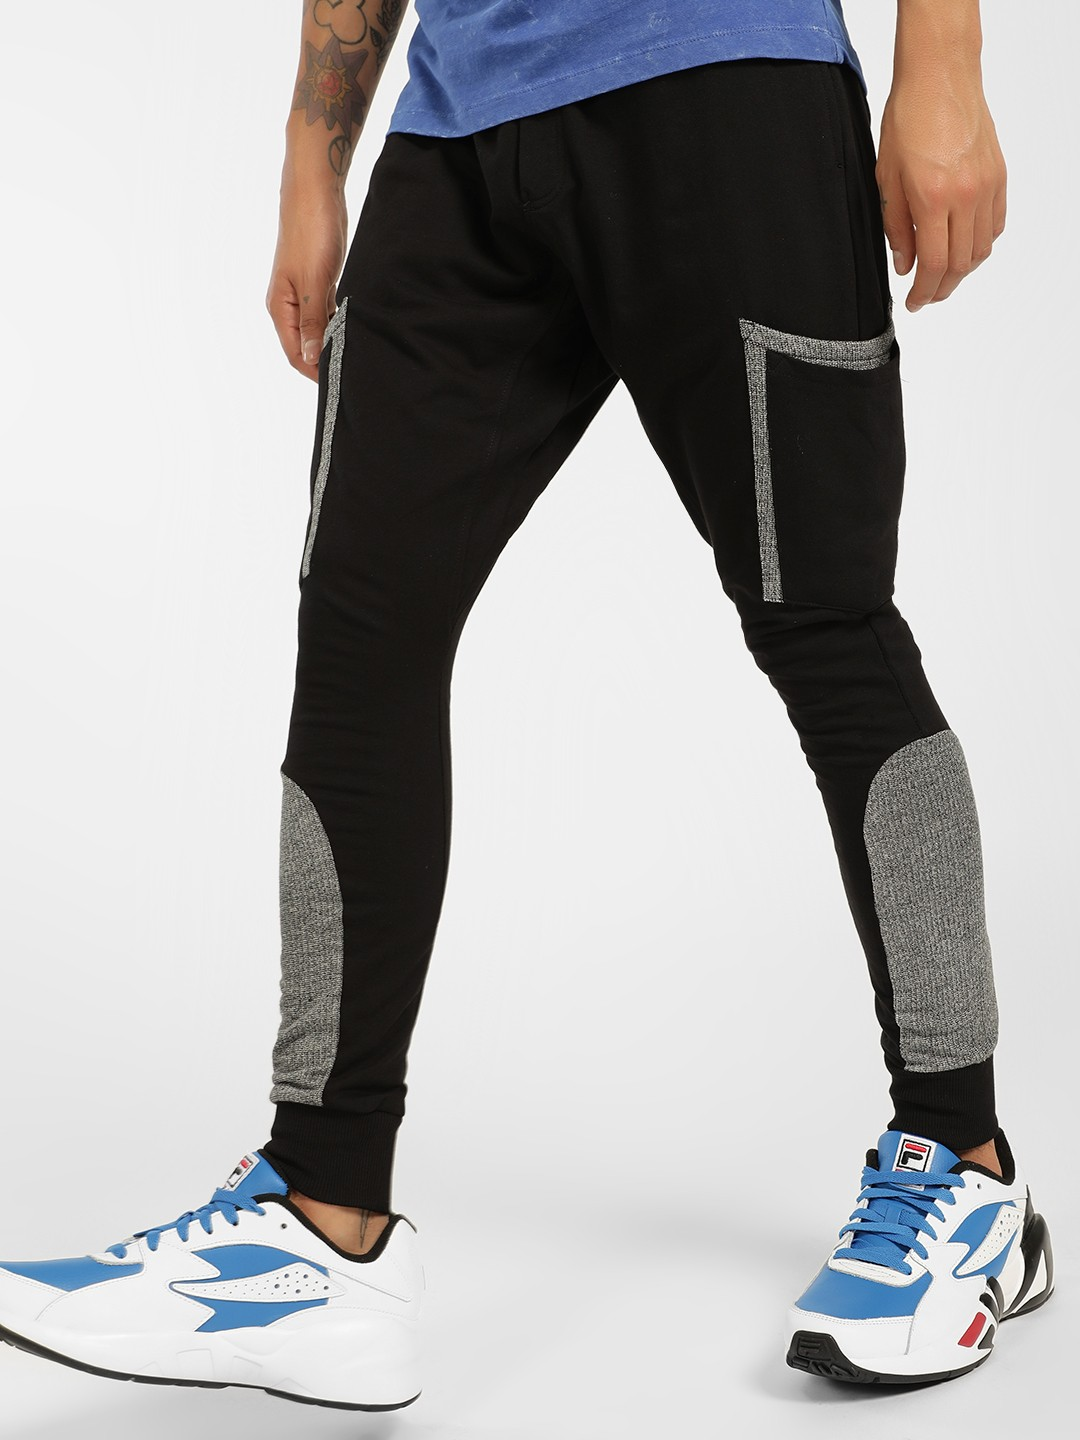 SKULT By Shahid Kapoor Black Contrast Panel Knitted Skinny Joggers 1